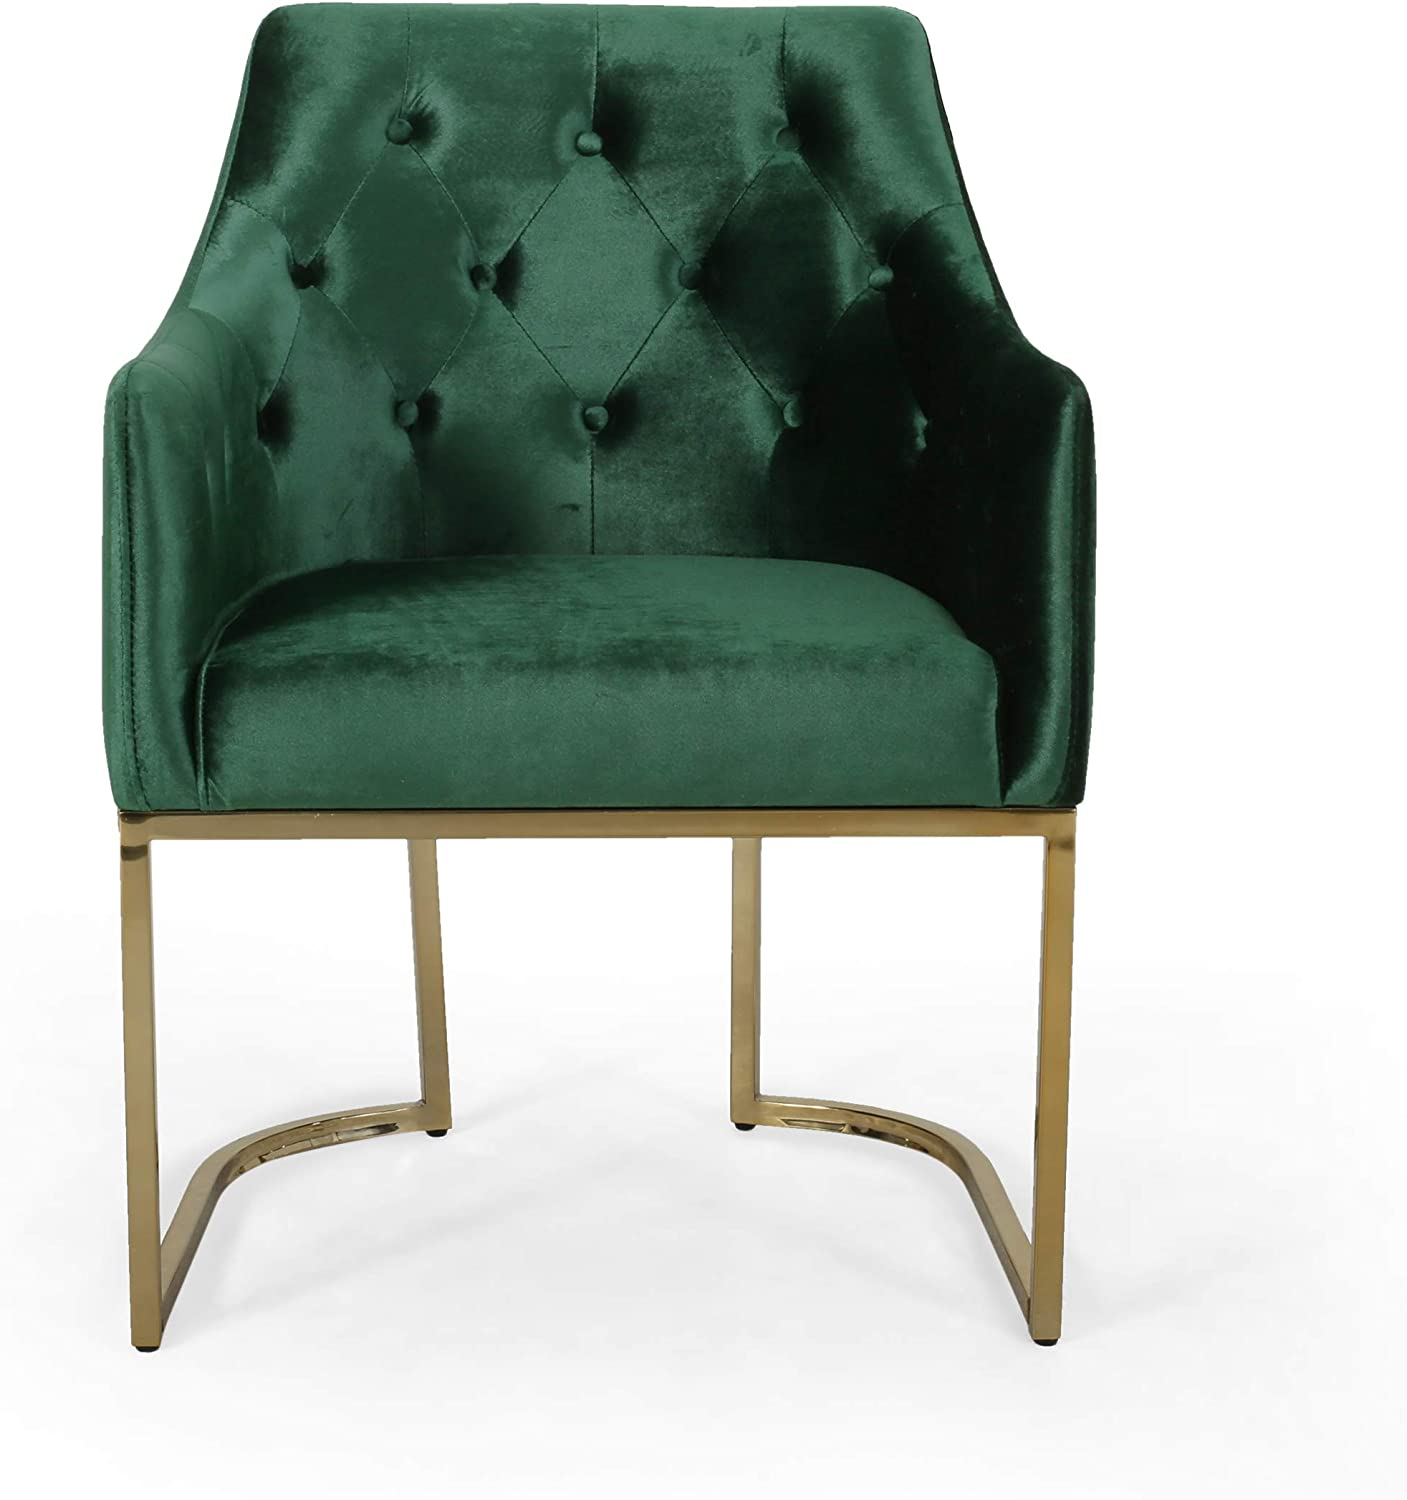 Christopher Knight Home Fern Modern Tufted Glam Accent Chair with Velvet Cushions and U-Shaped Base, Emerald and Gold Finish